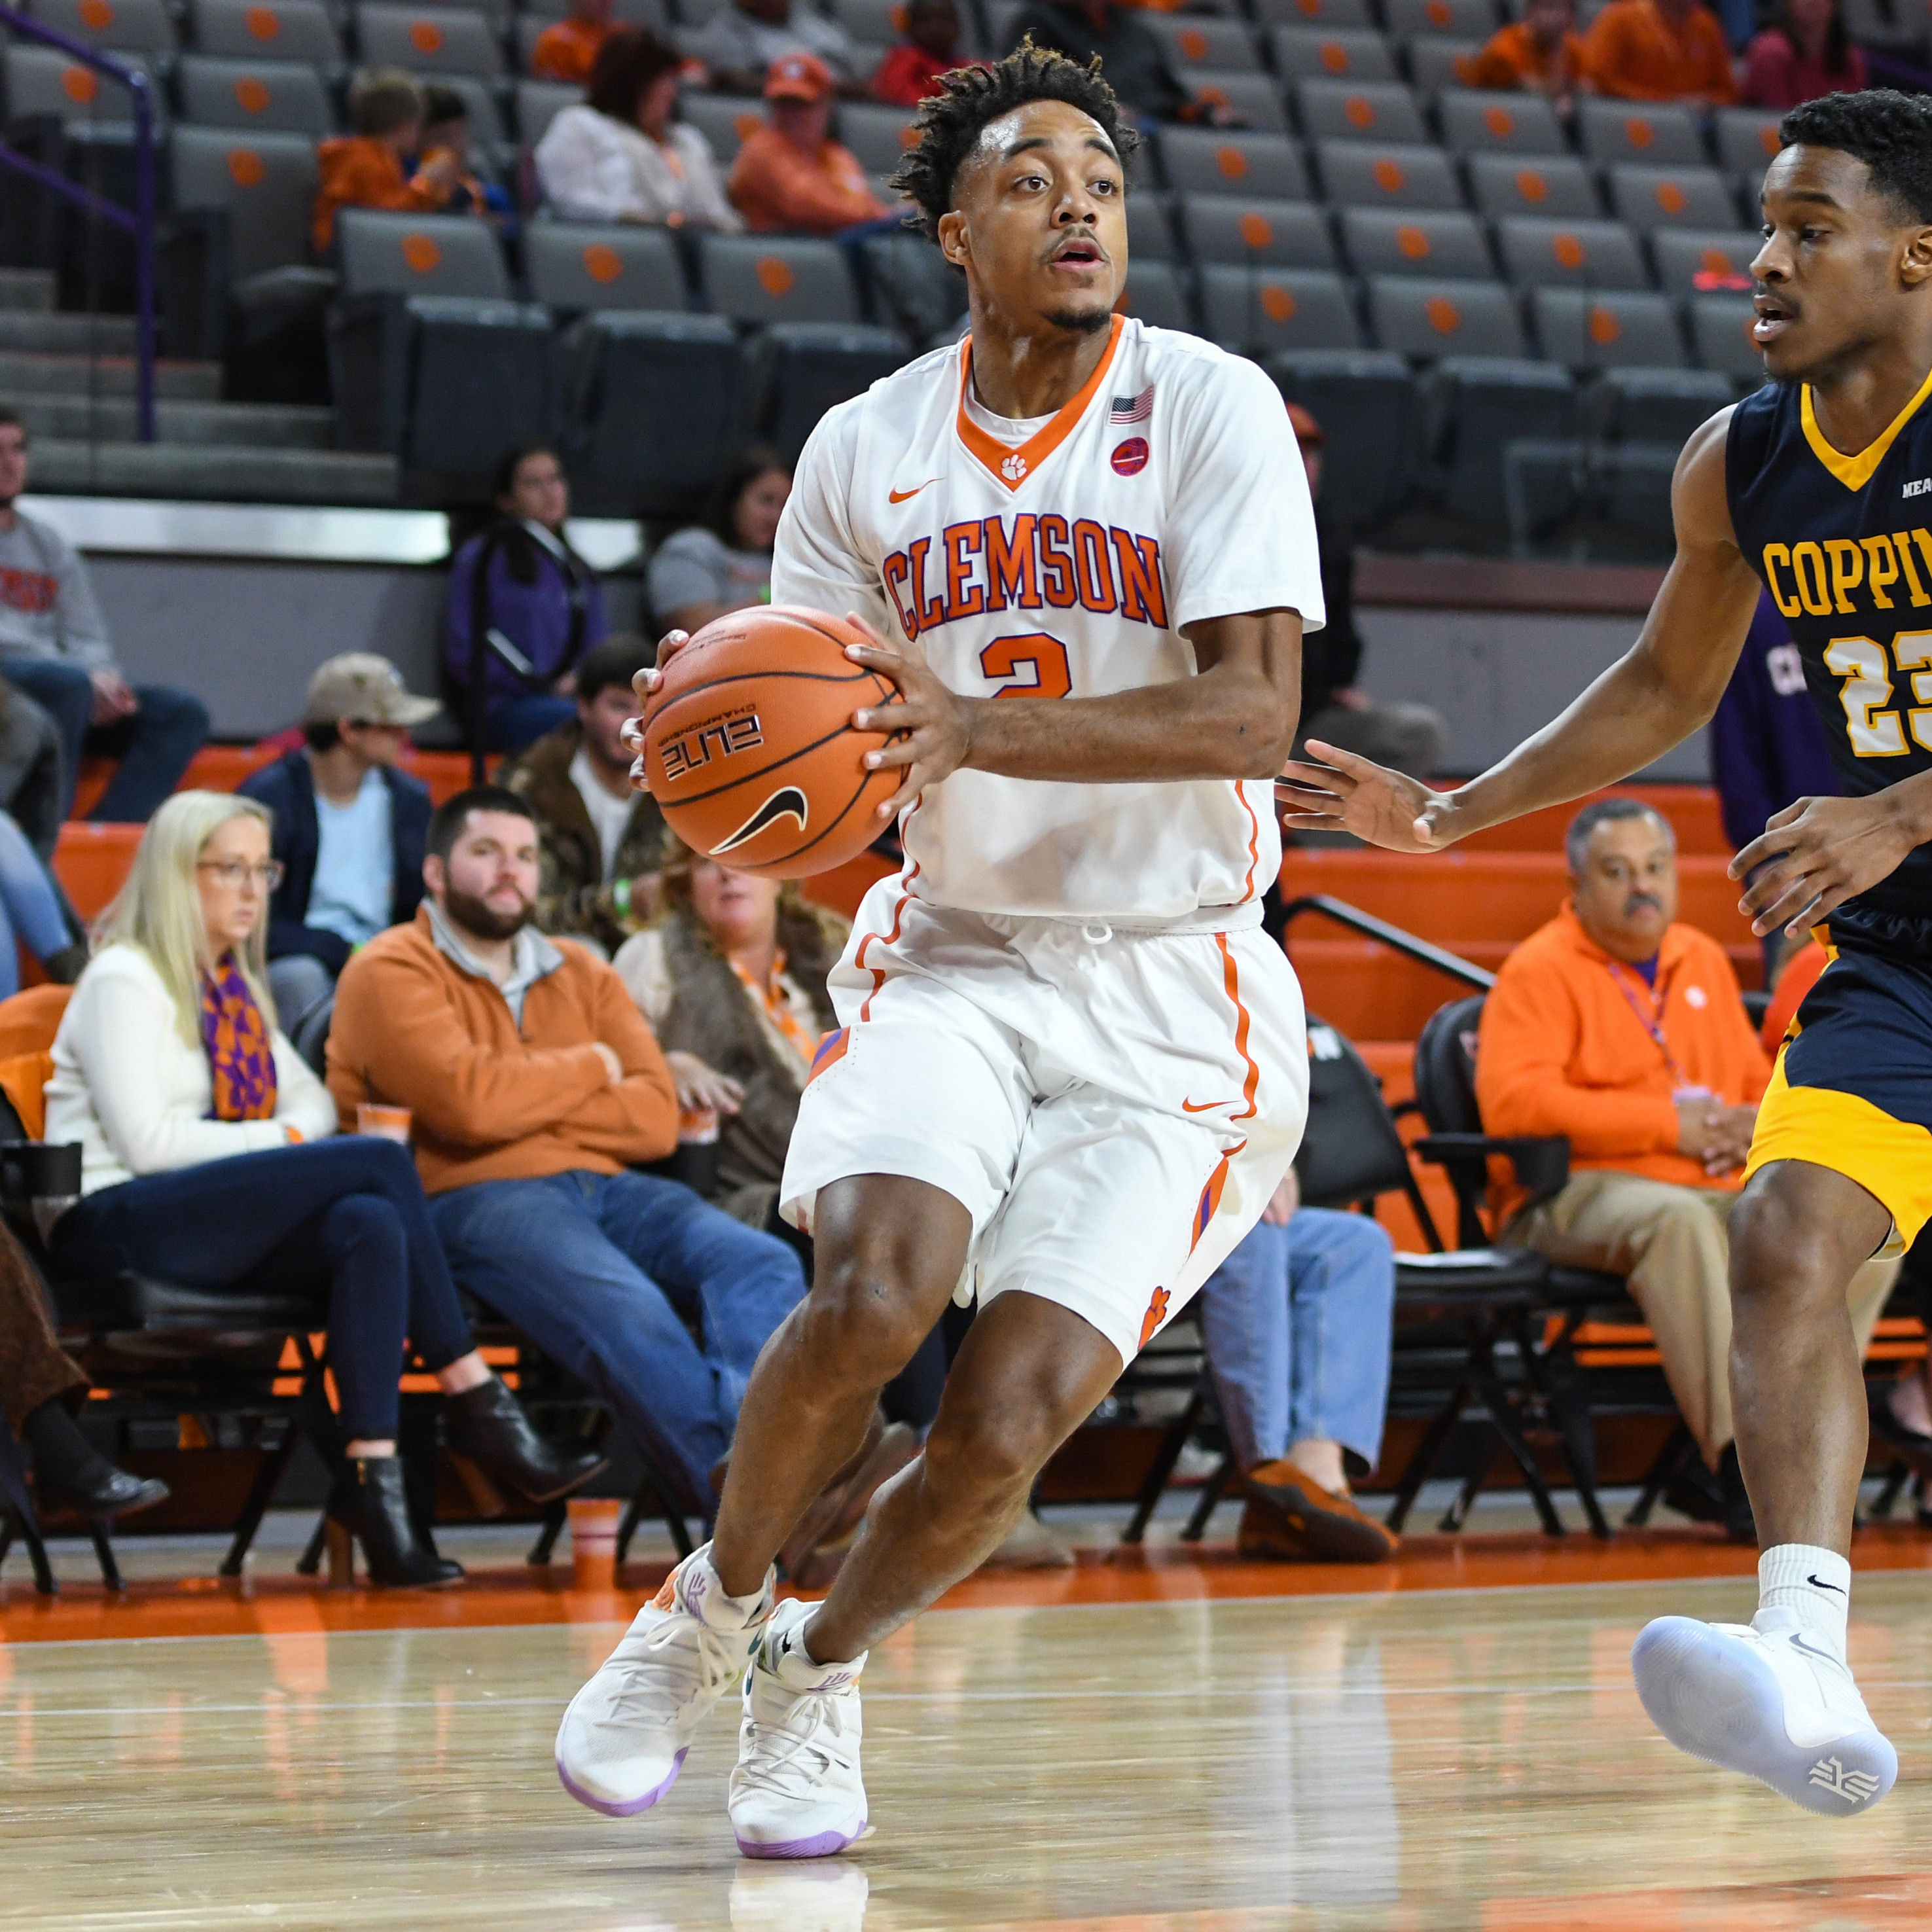 Clemson Falls at No. 11 Louisville